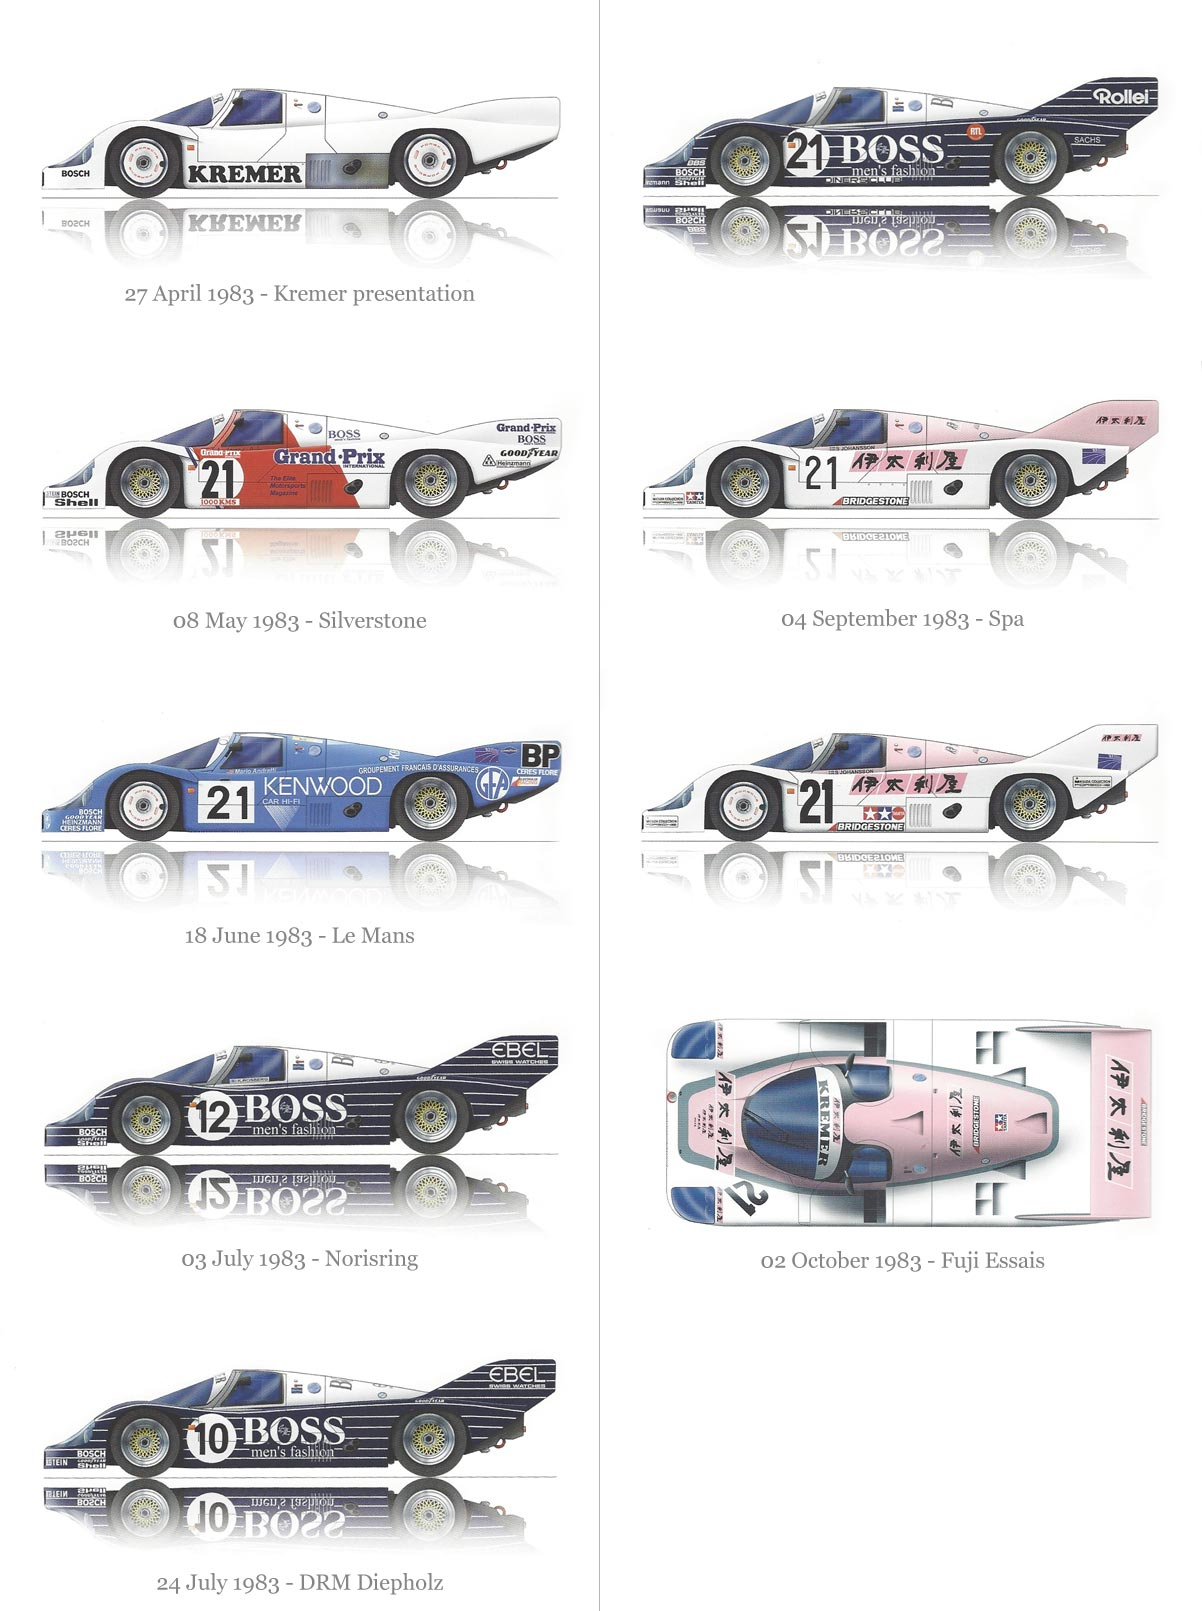 1983 Porsche Kremer Racing Car livery designs